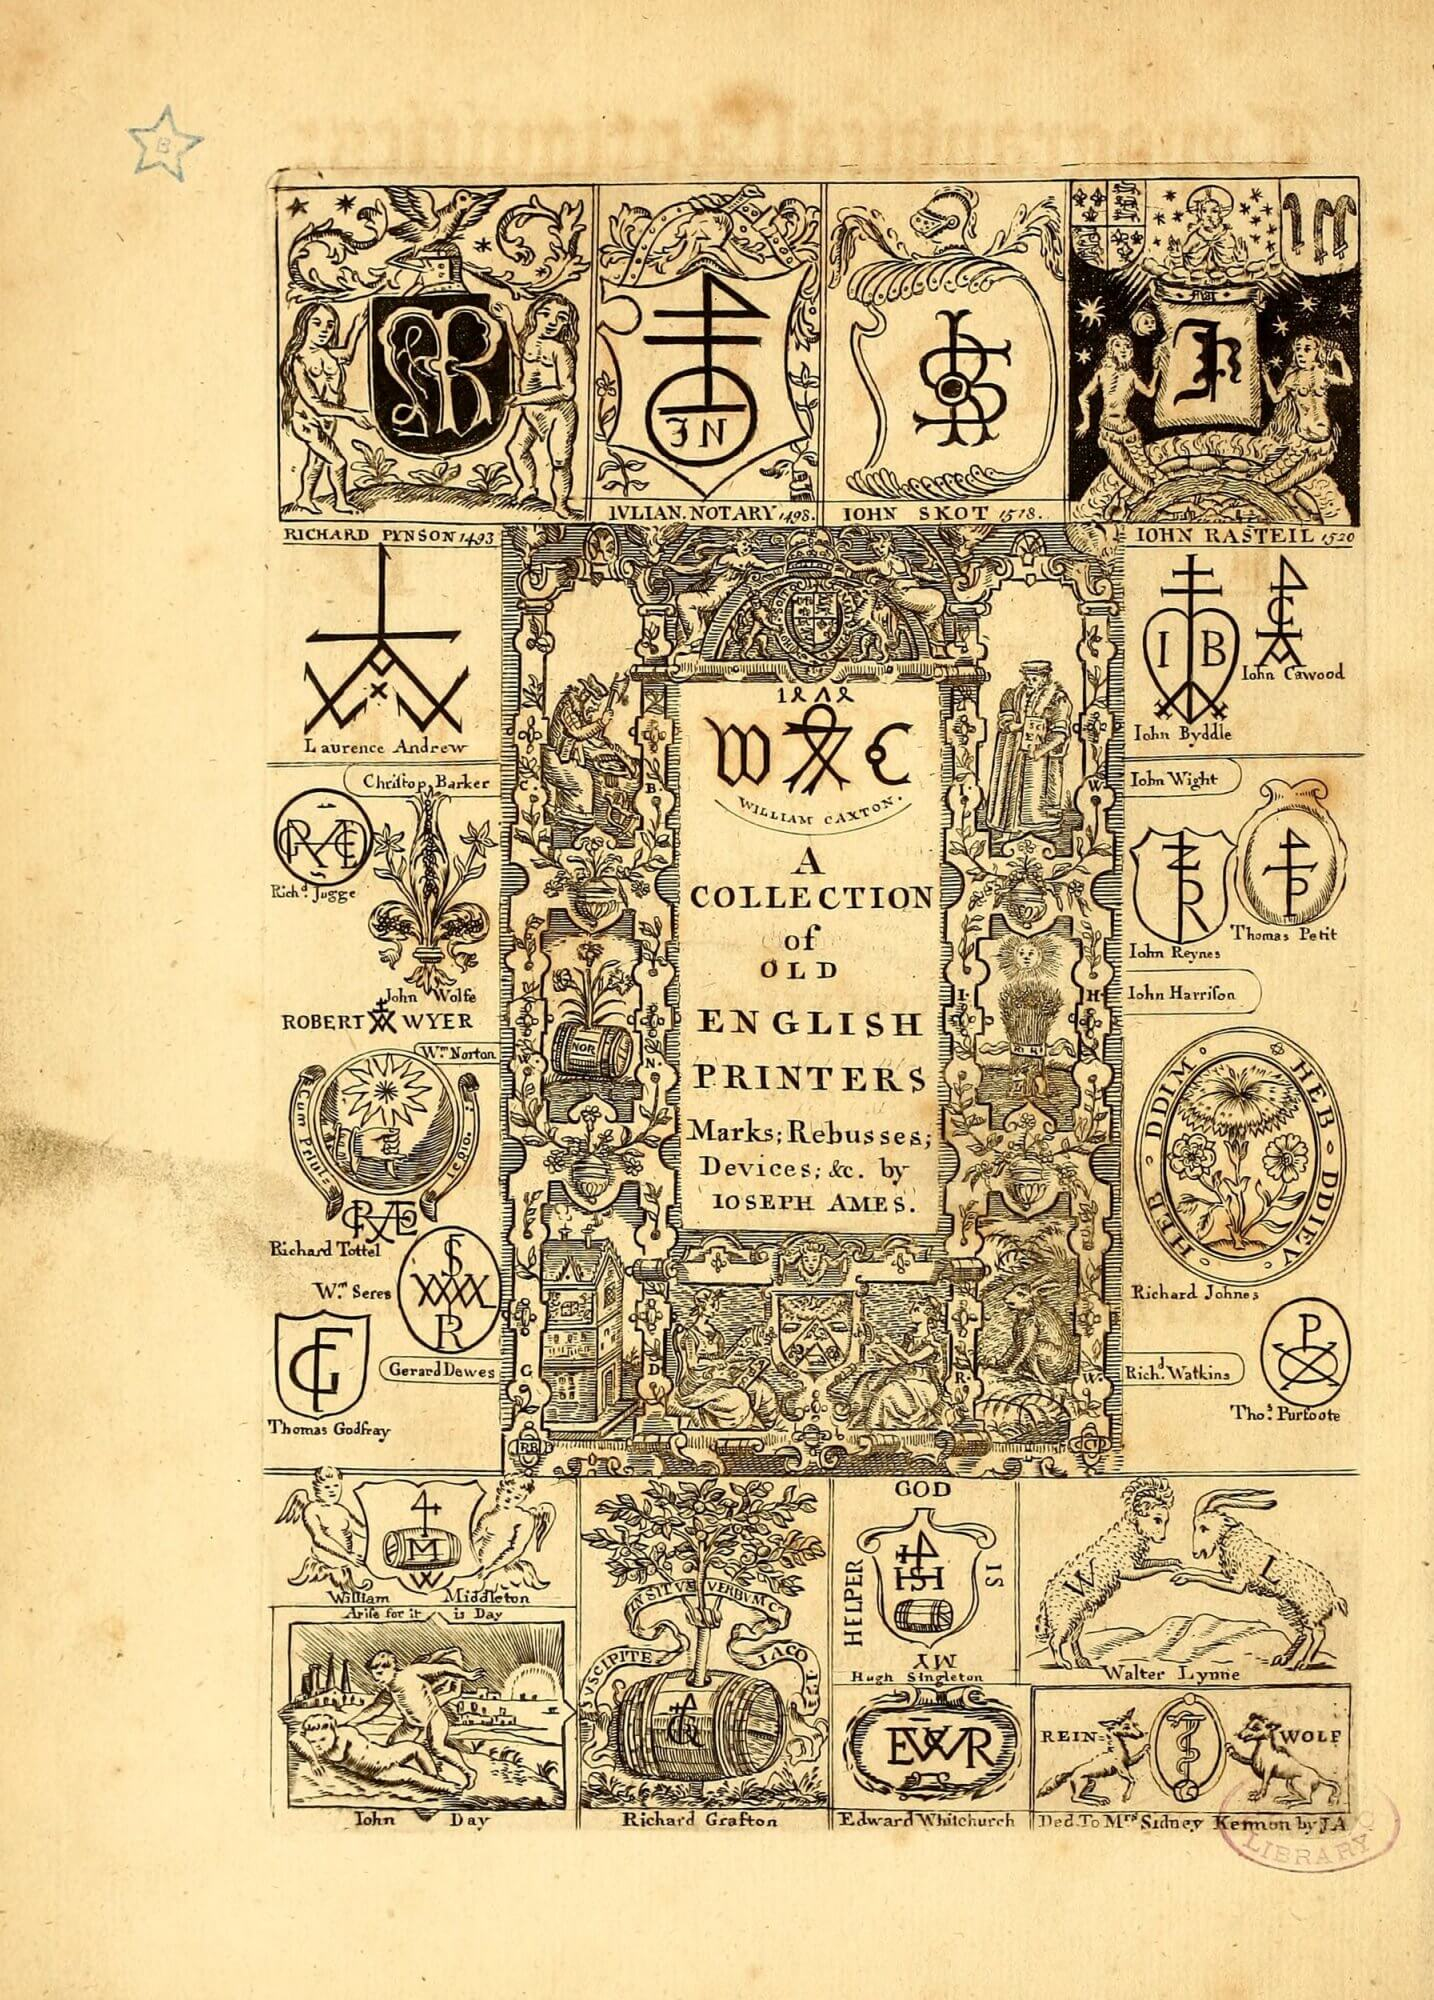 Copies of early English printer's devices make up the frontispiece to Ames's history of English printing.